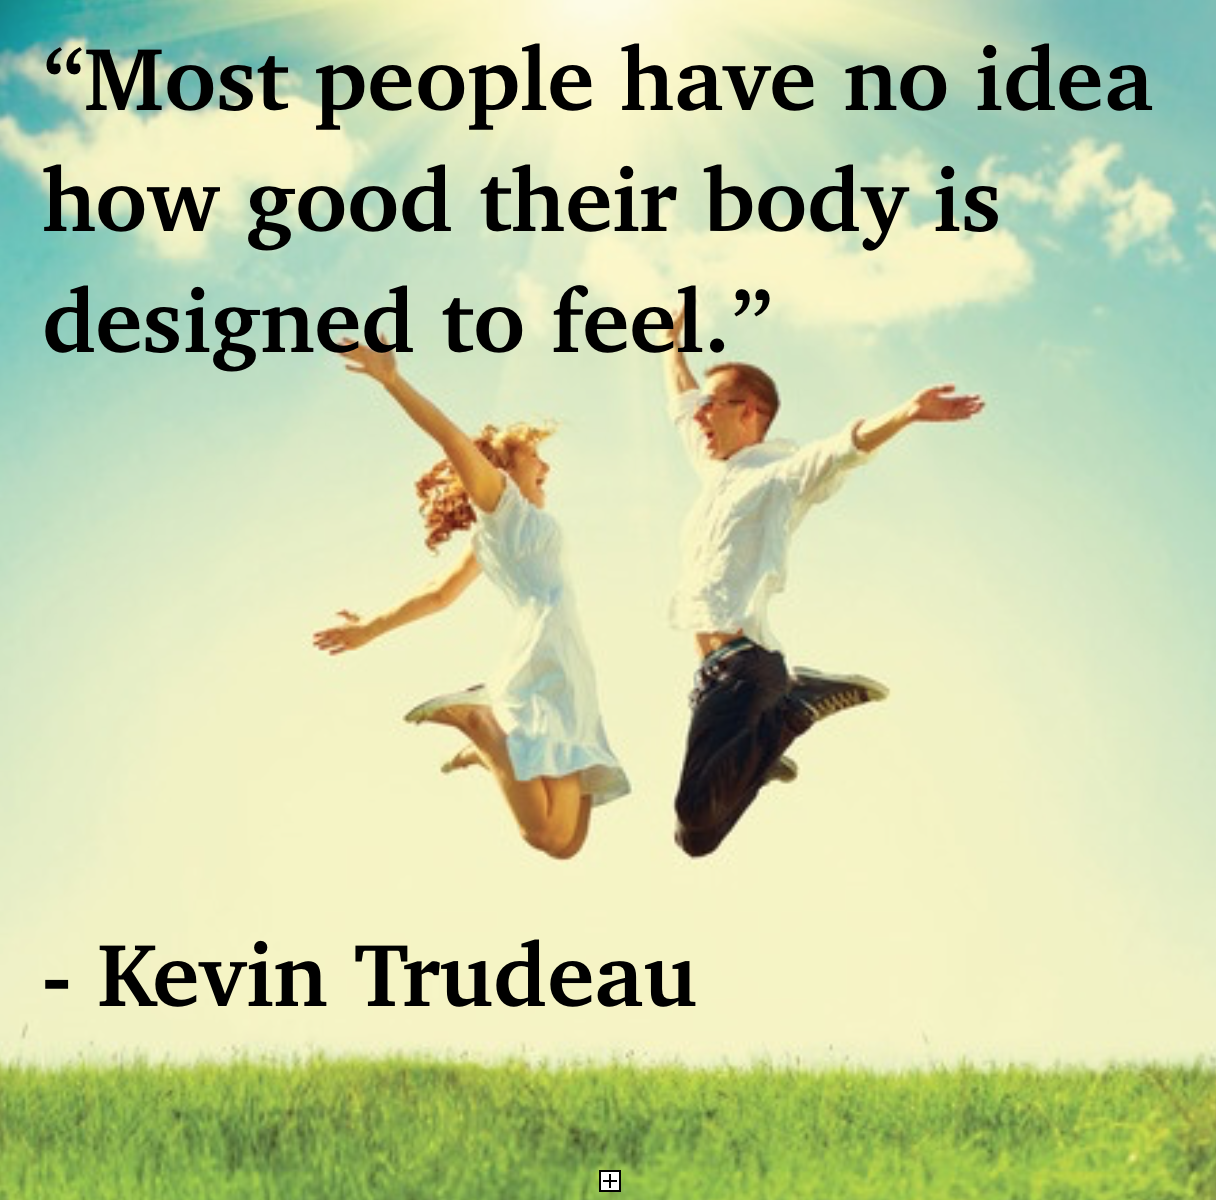 Kevin Trudeau quote